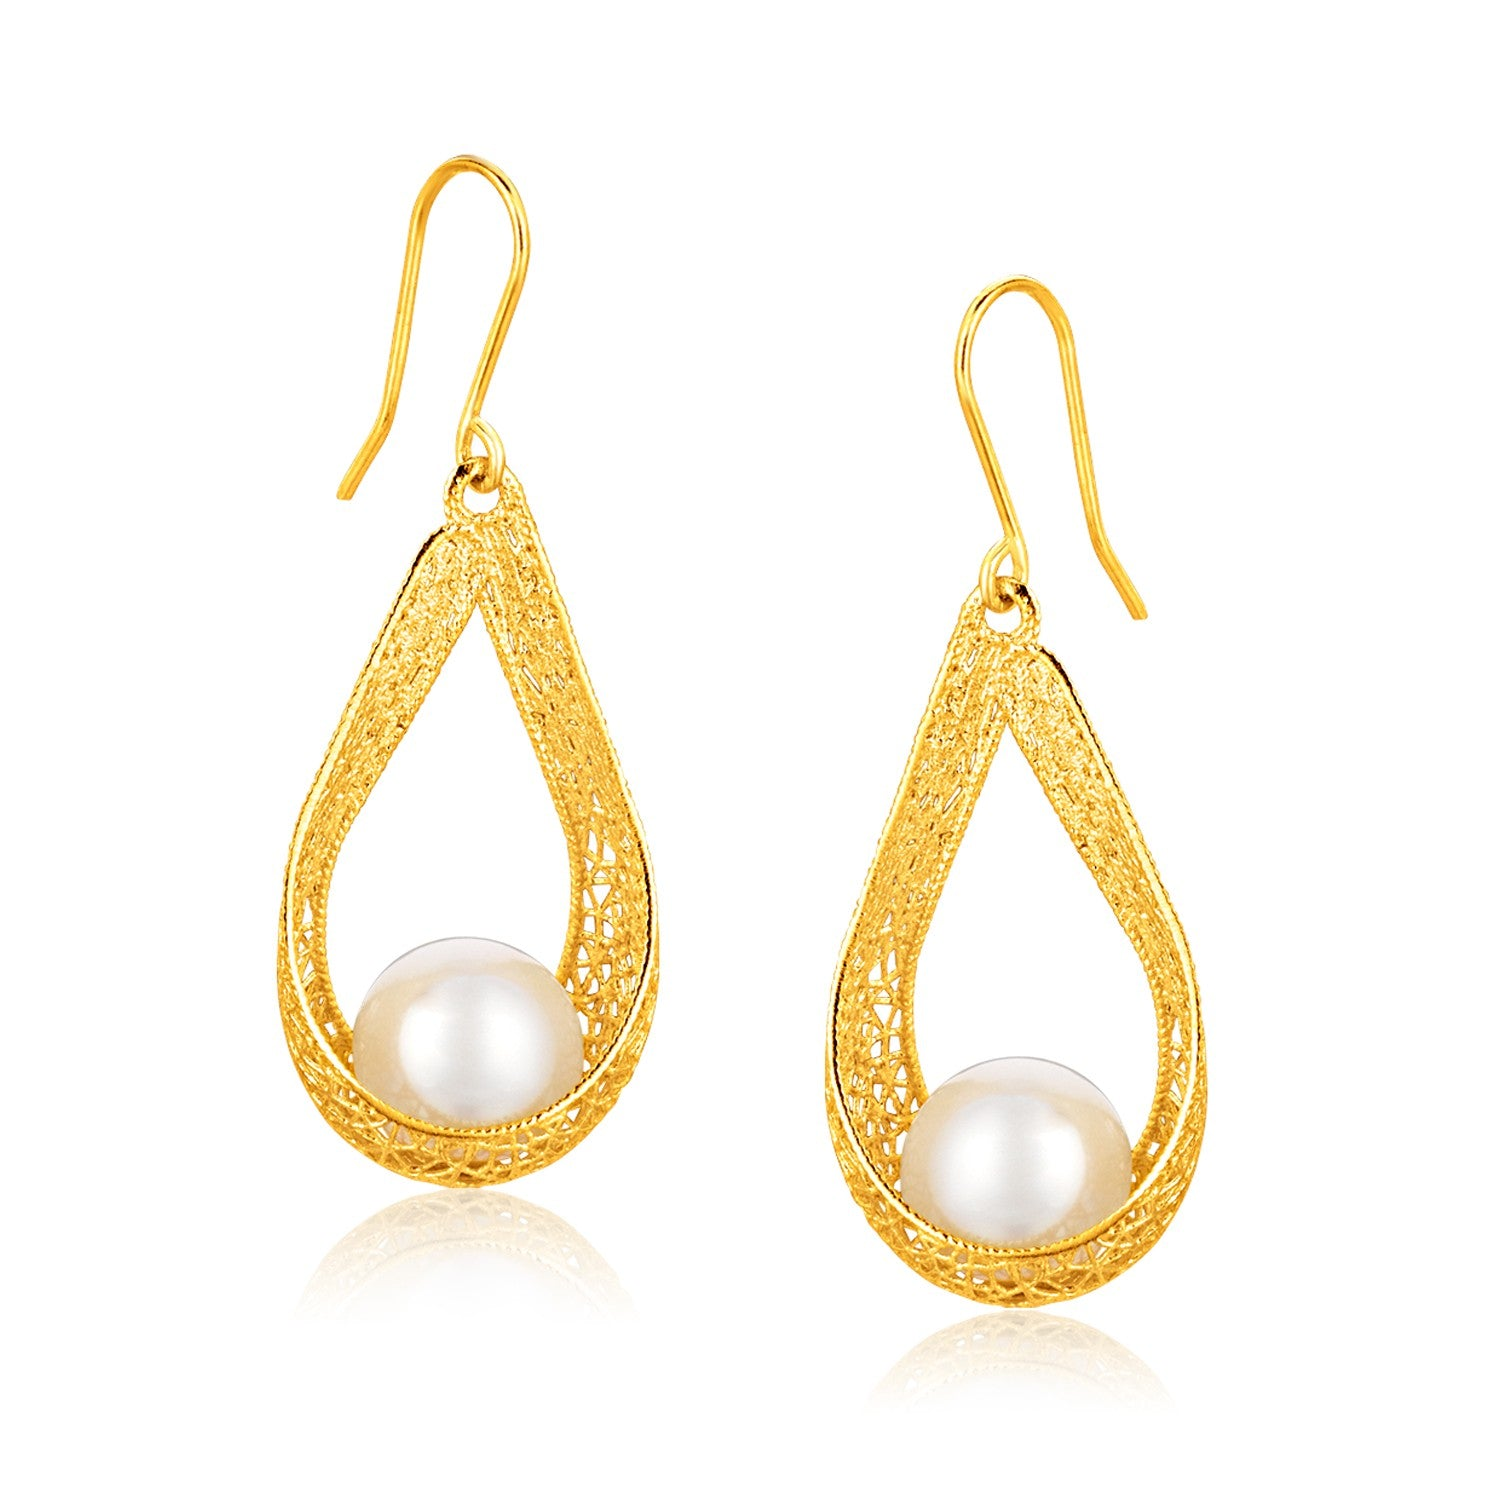 Italian Design 14K Yellow Gold Pearl Crochet Teardrop Ribbon Earrings